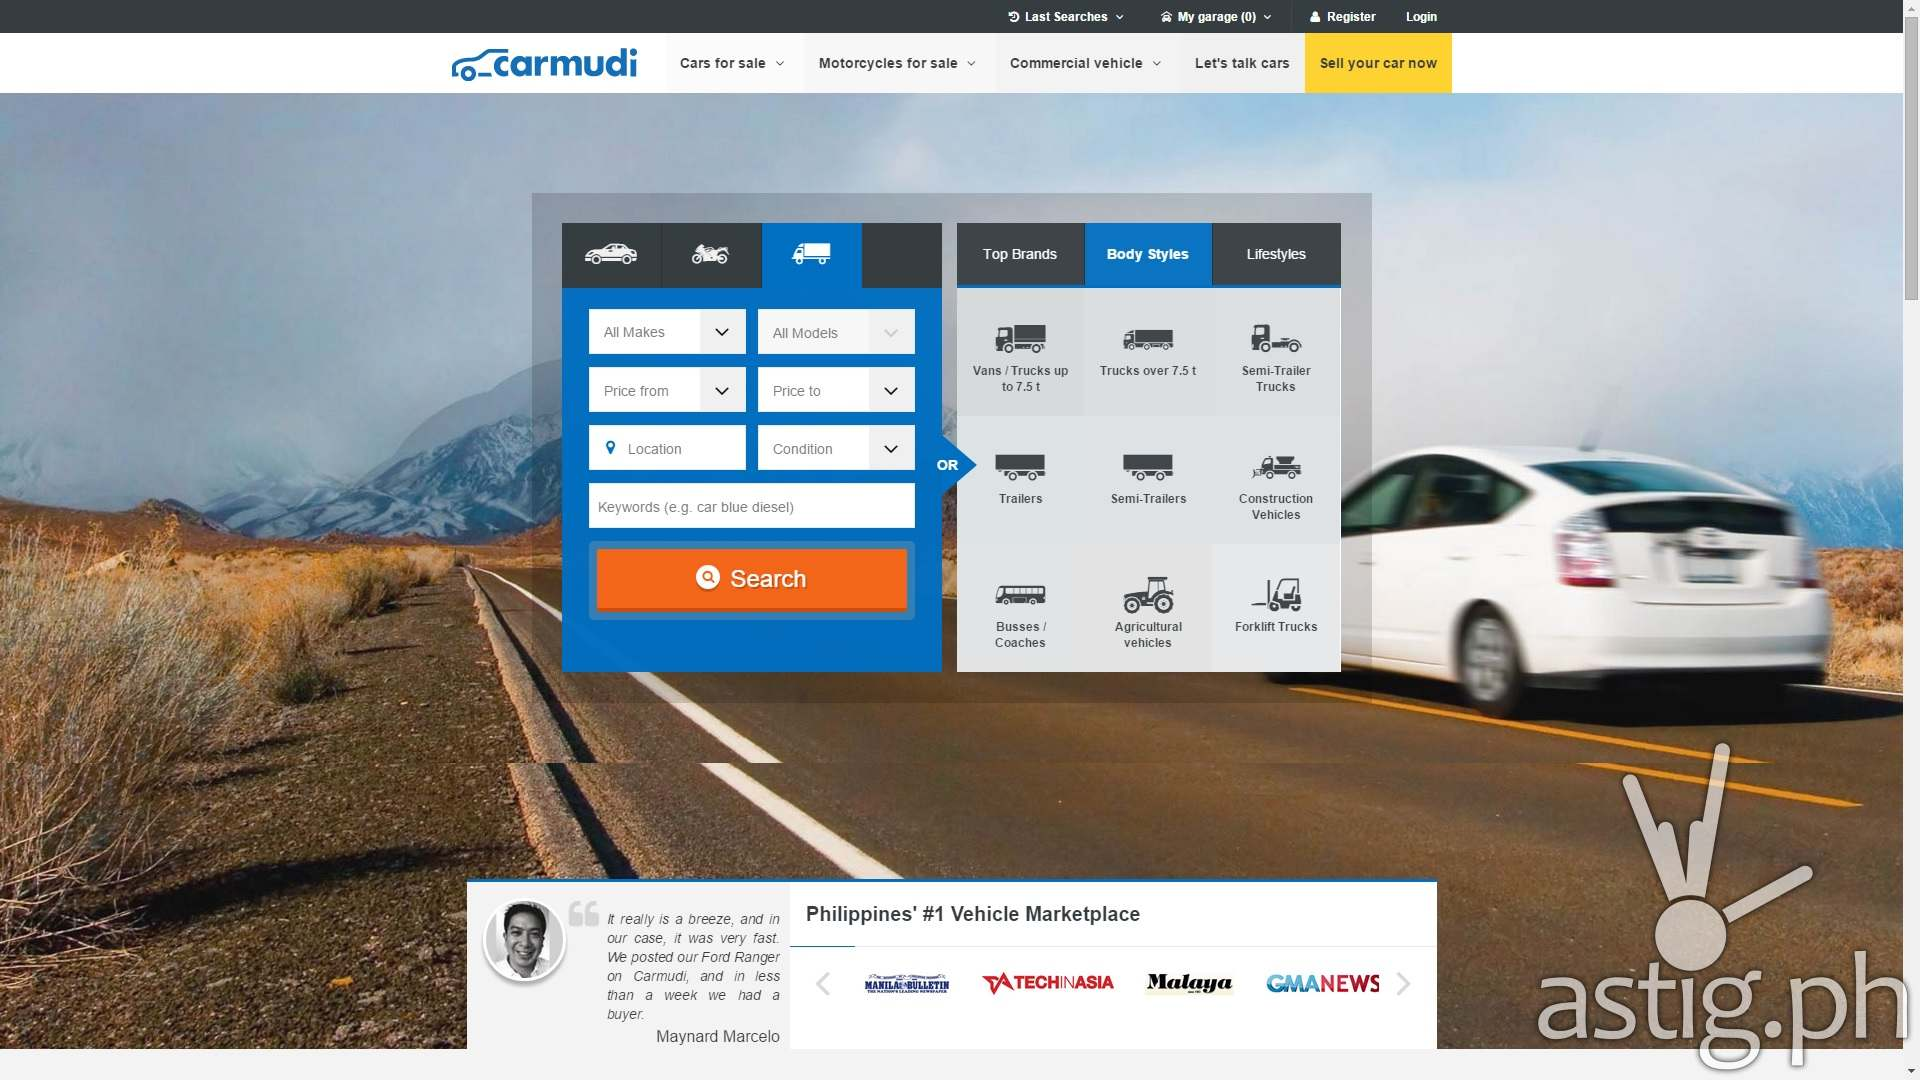 Carmudi Philippines launches new design